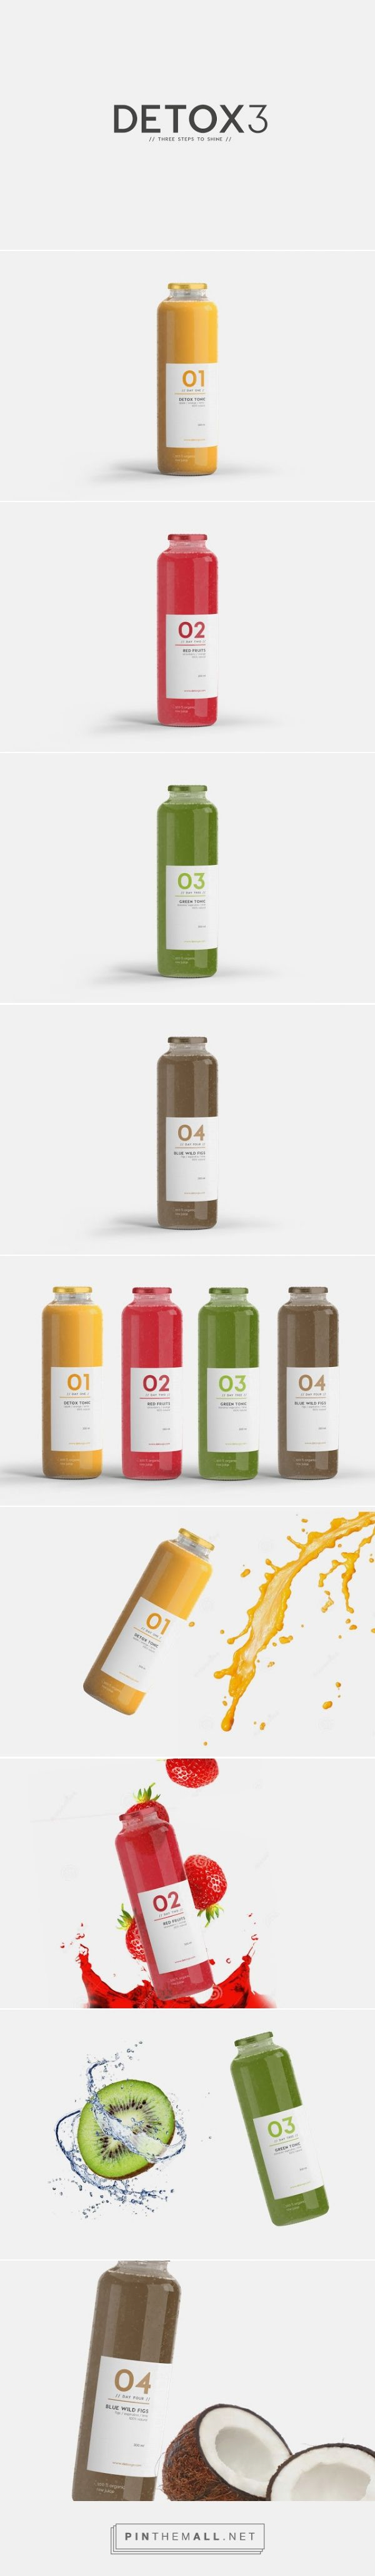 DETOX 3  drink beverage on Packaging of the World - Creative Package Design Gallery  http://www.packagingoftheworld.com/2016/01/detox-3.html